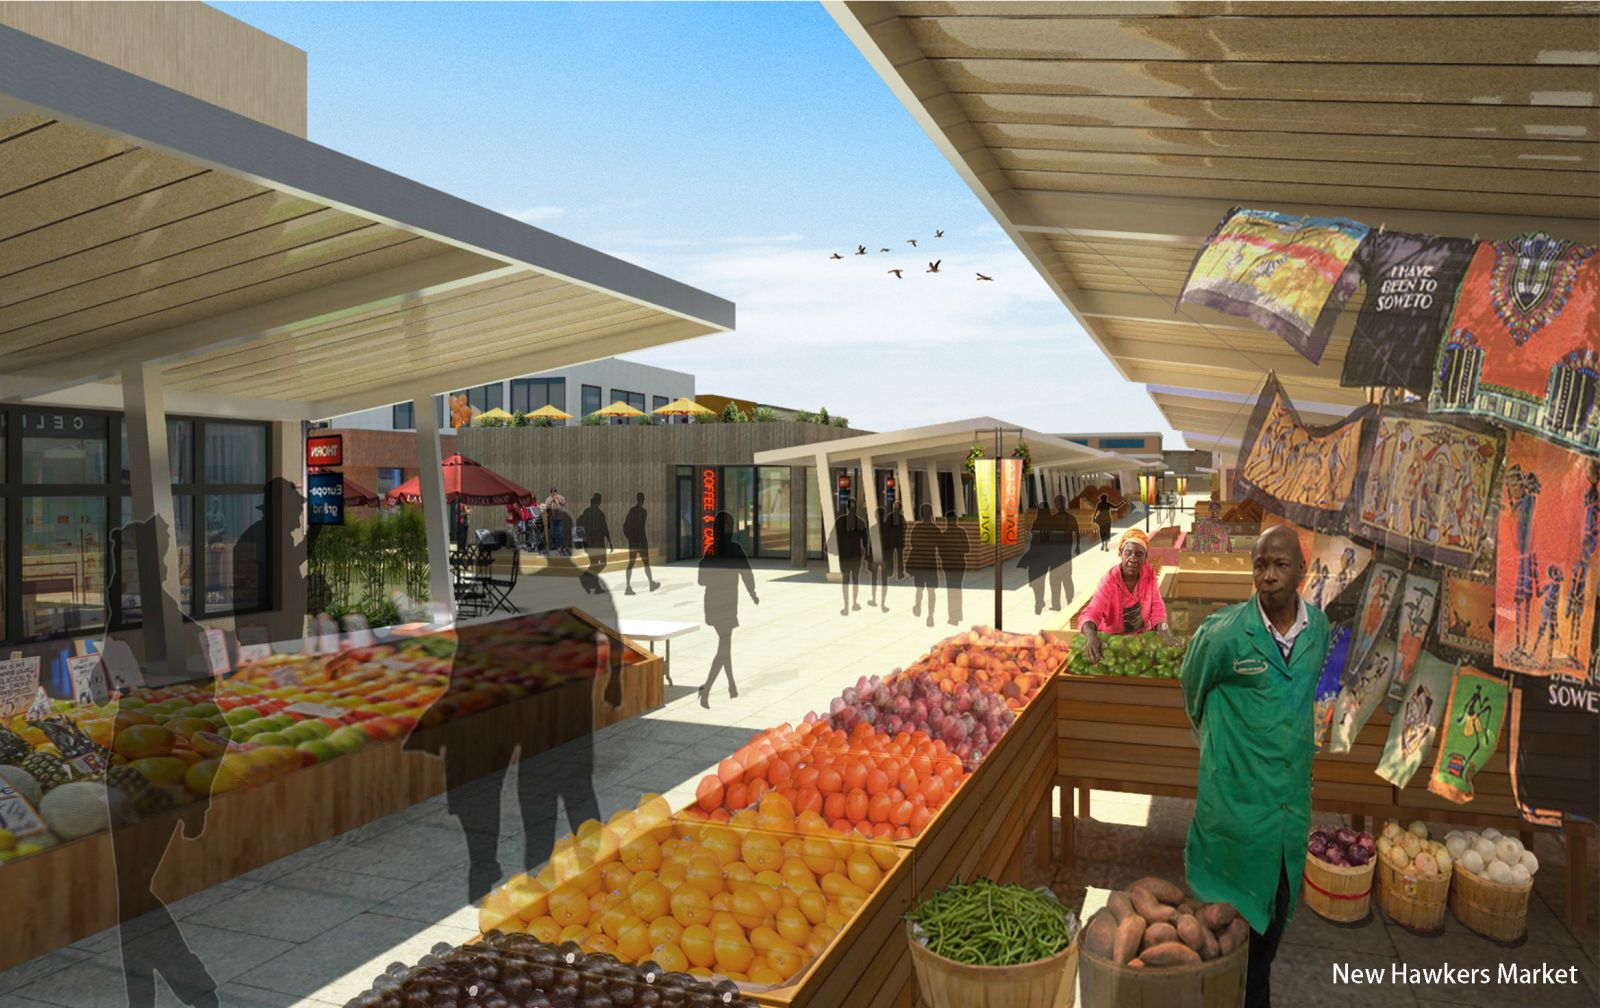 The team proposed a new hawkers' market where independent sellers could set up stalls as well as an adjacent commercial shopping center.